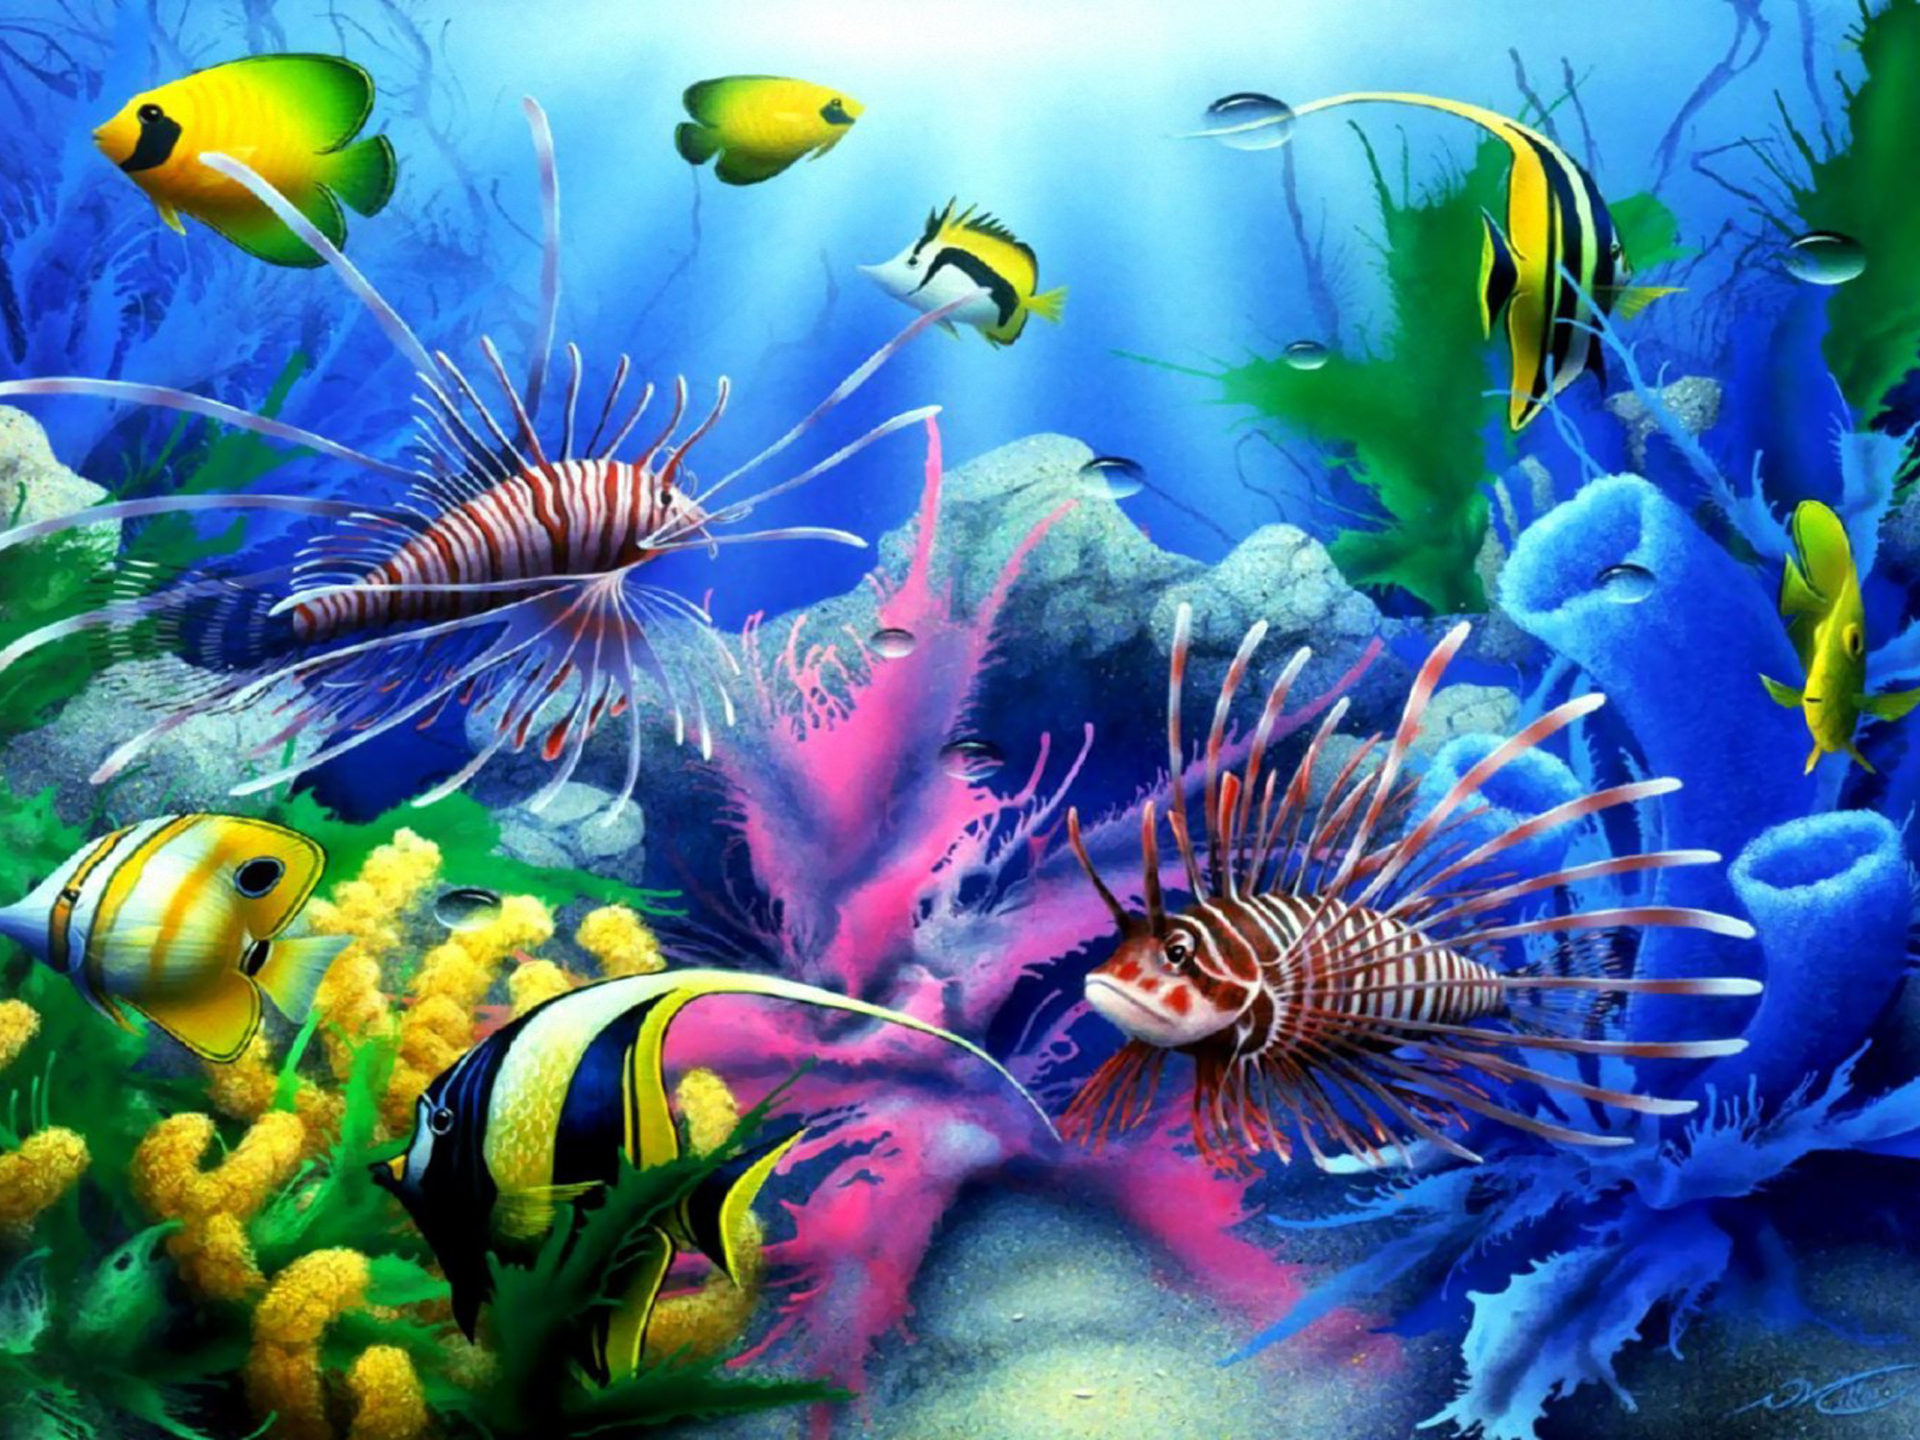 Animated Princess Wallpapers Sea Seabed Colorful Tropical Fish Coral Wallpaper Hd For